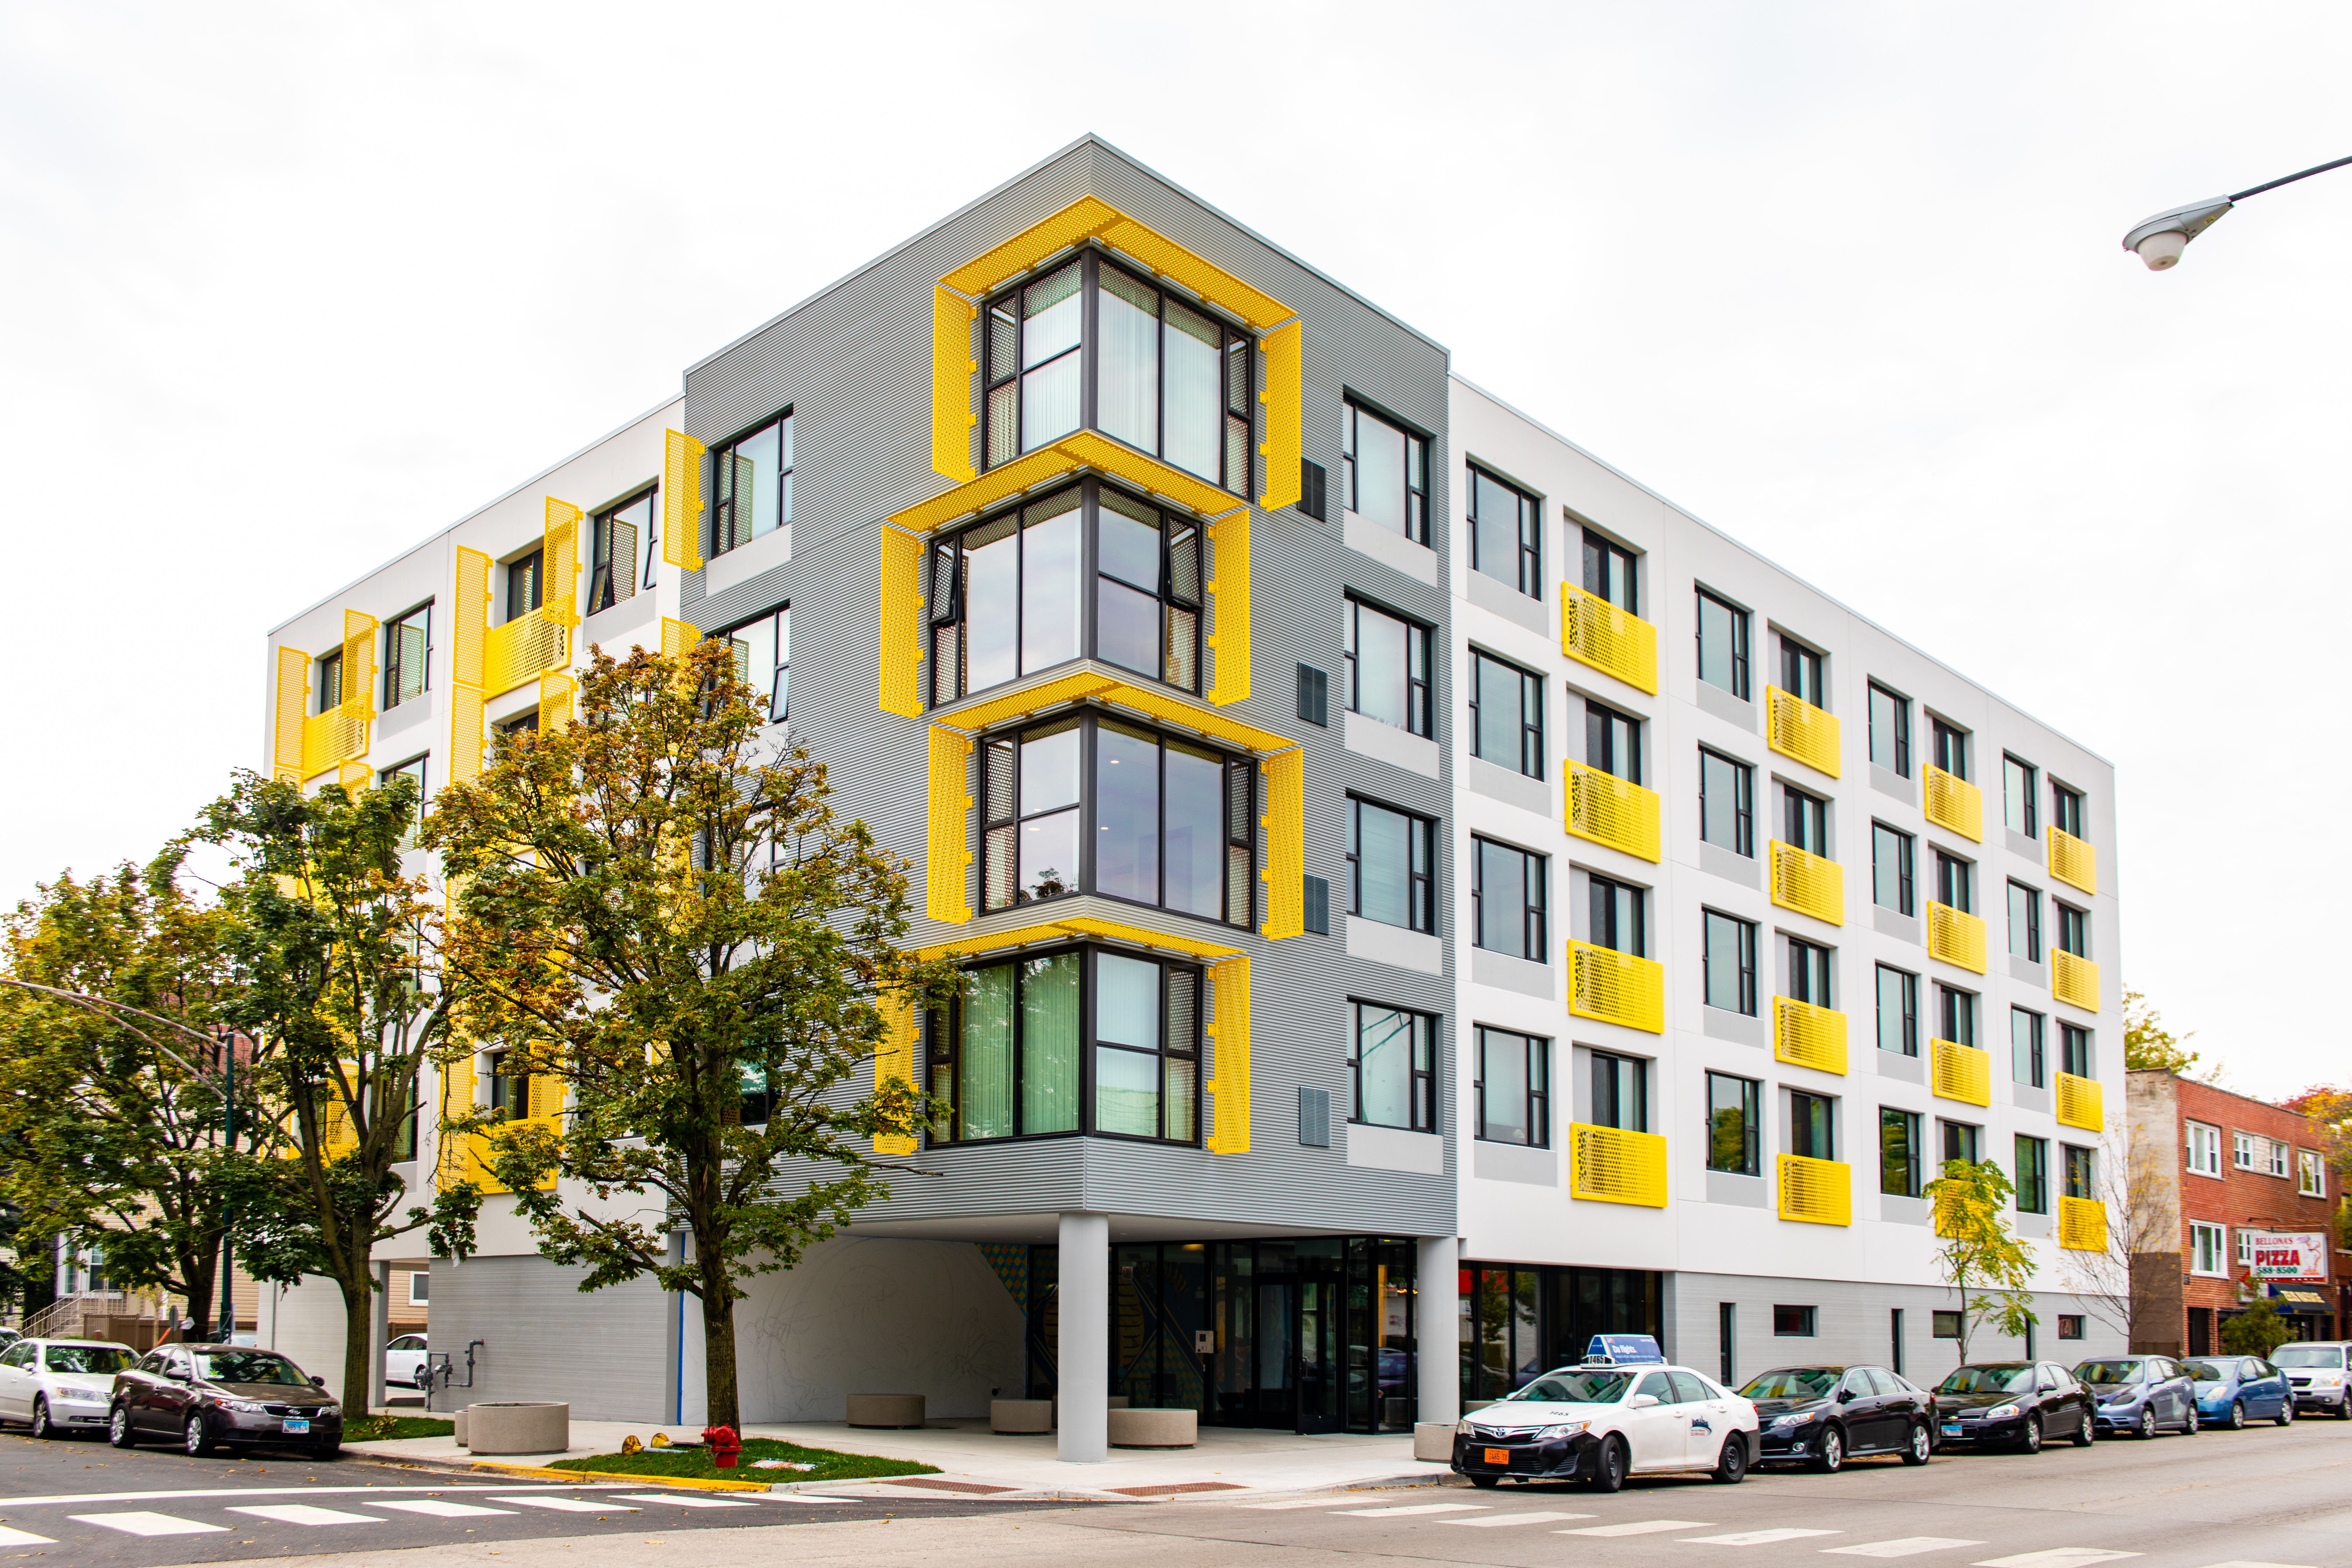 A five-story apartment building with a white and gray facade and yellow accents around the windows and in front of the balconies.